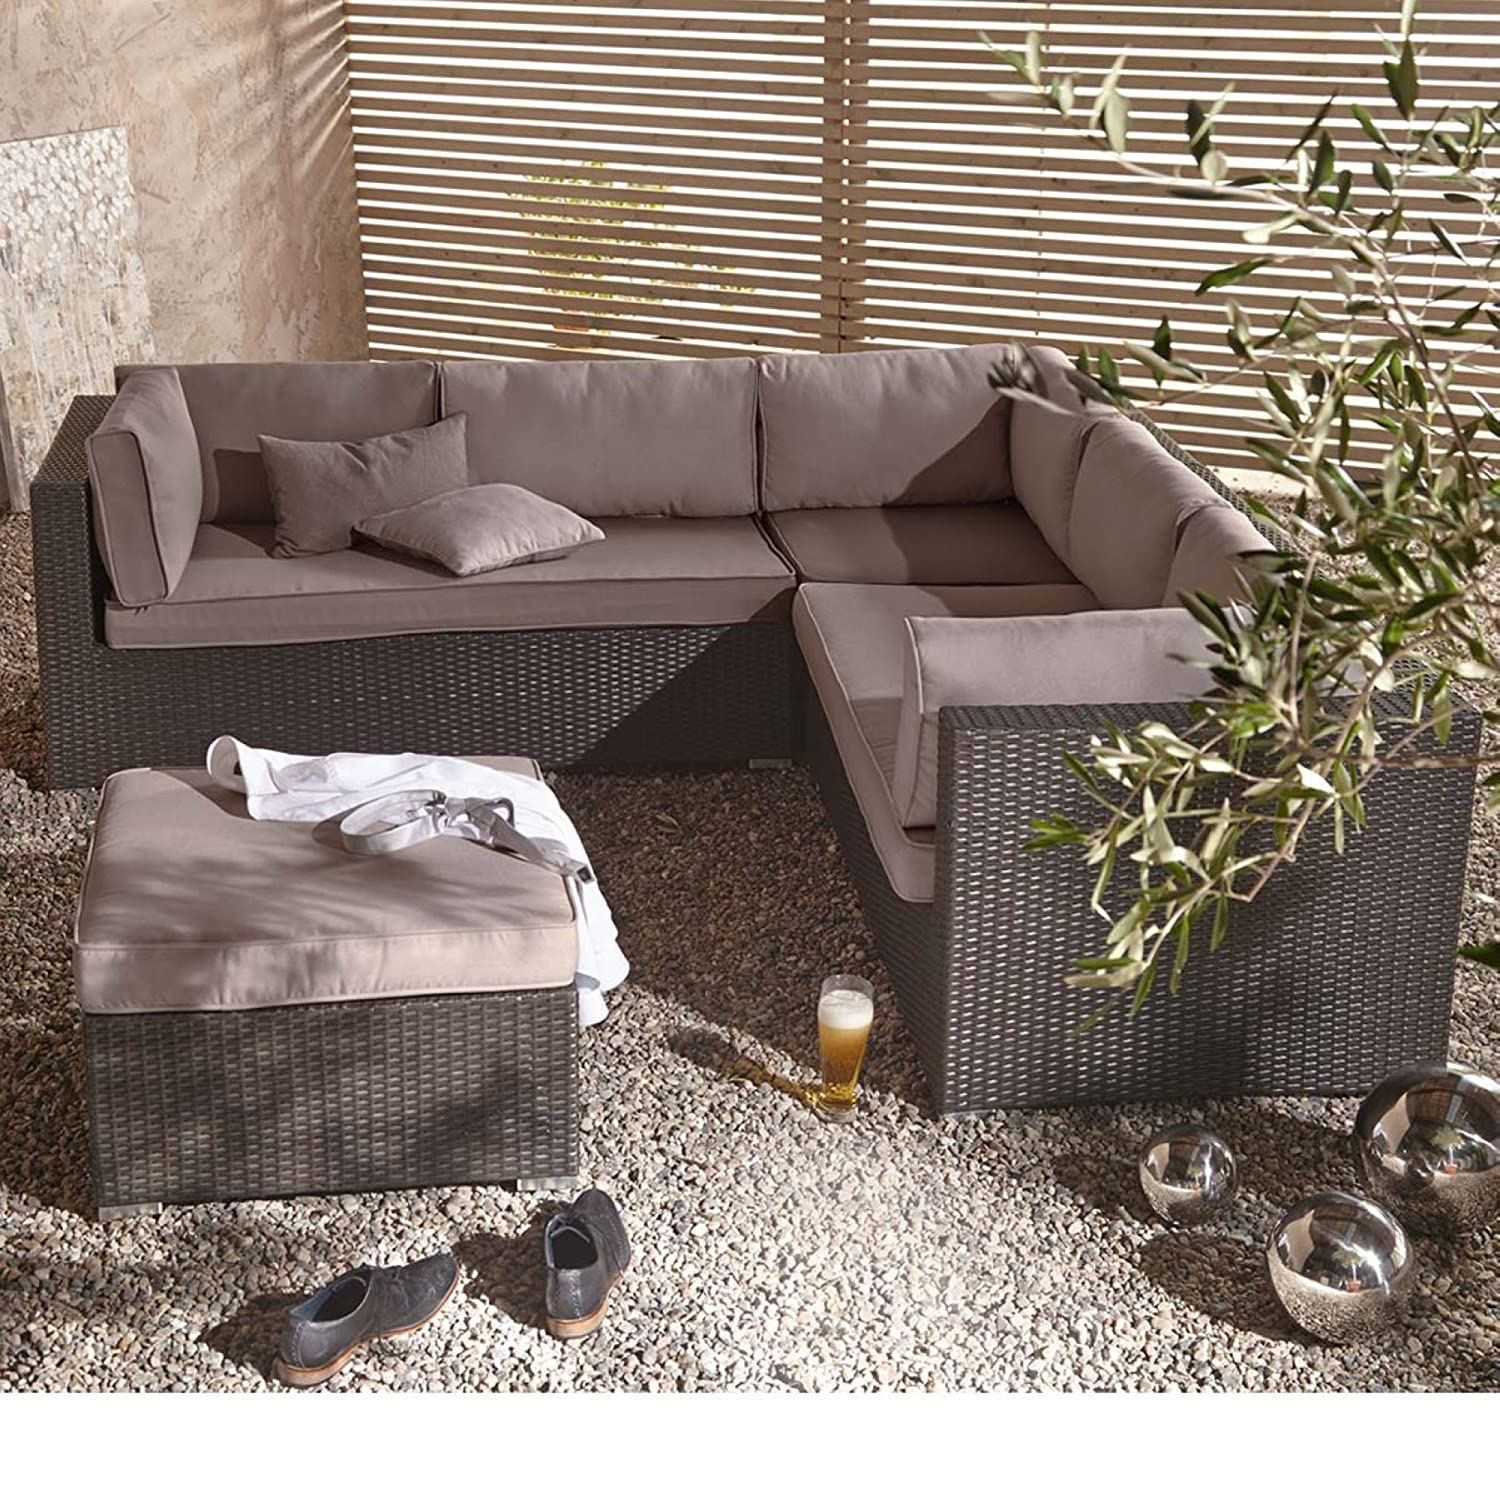 gartenm bel set aus kunstrattan inkl auflagen 4 teilig online bestellen. Black Bedroom Furniture Sets. Home Design Ideas